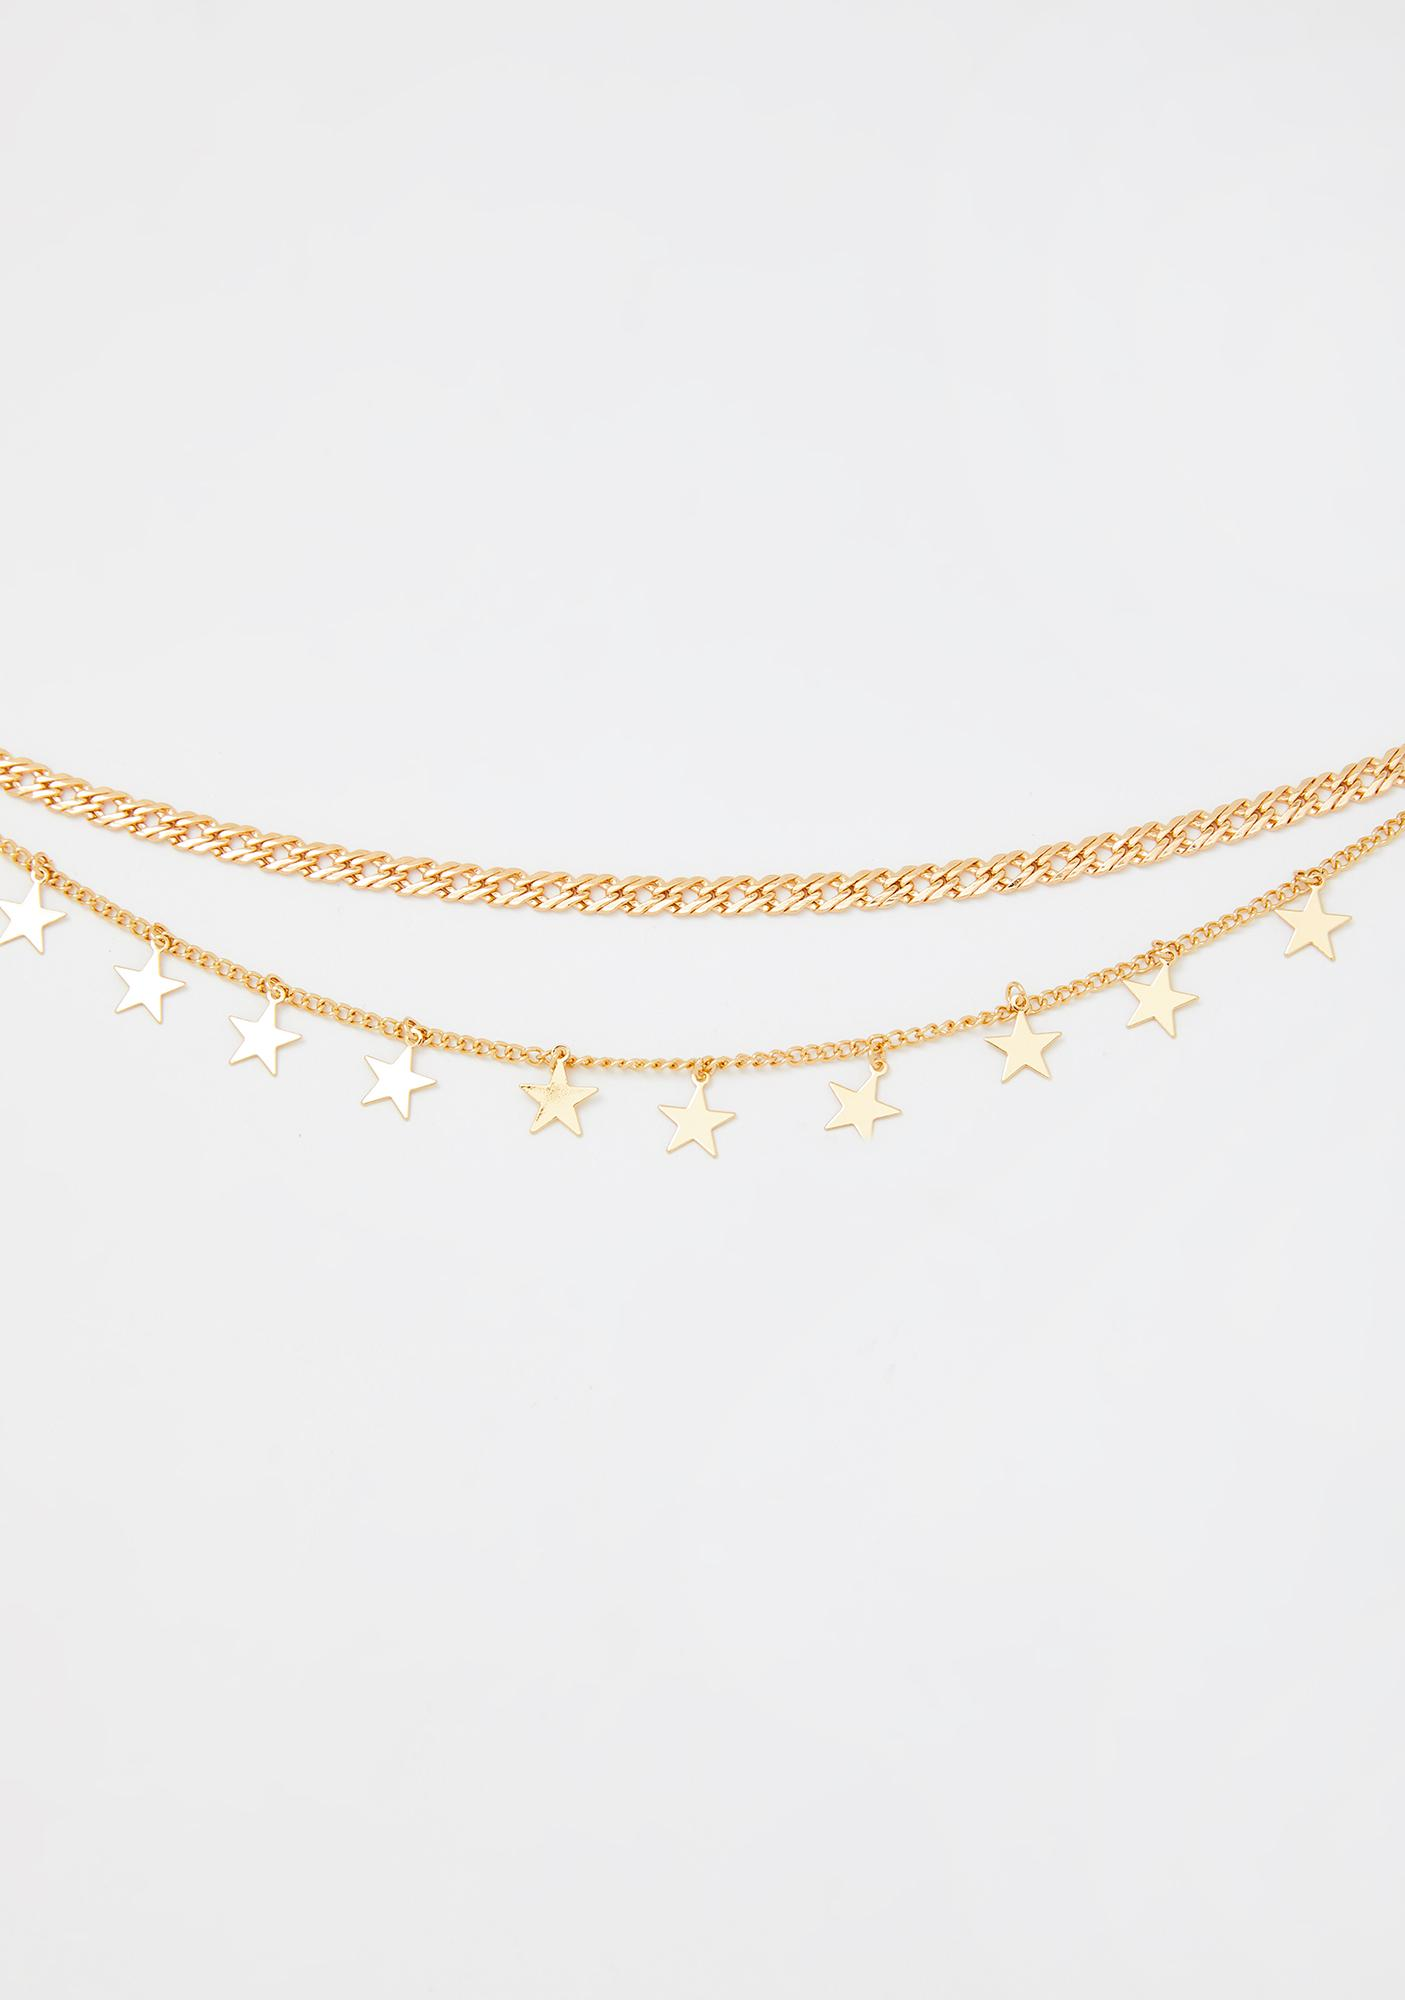 Goldie Written In The Stars Chain Necklace